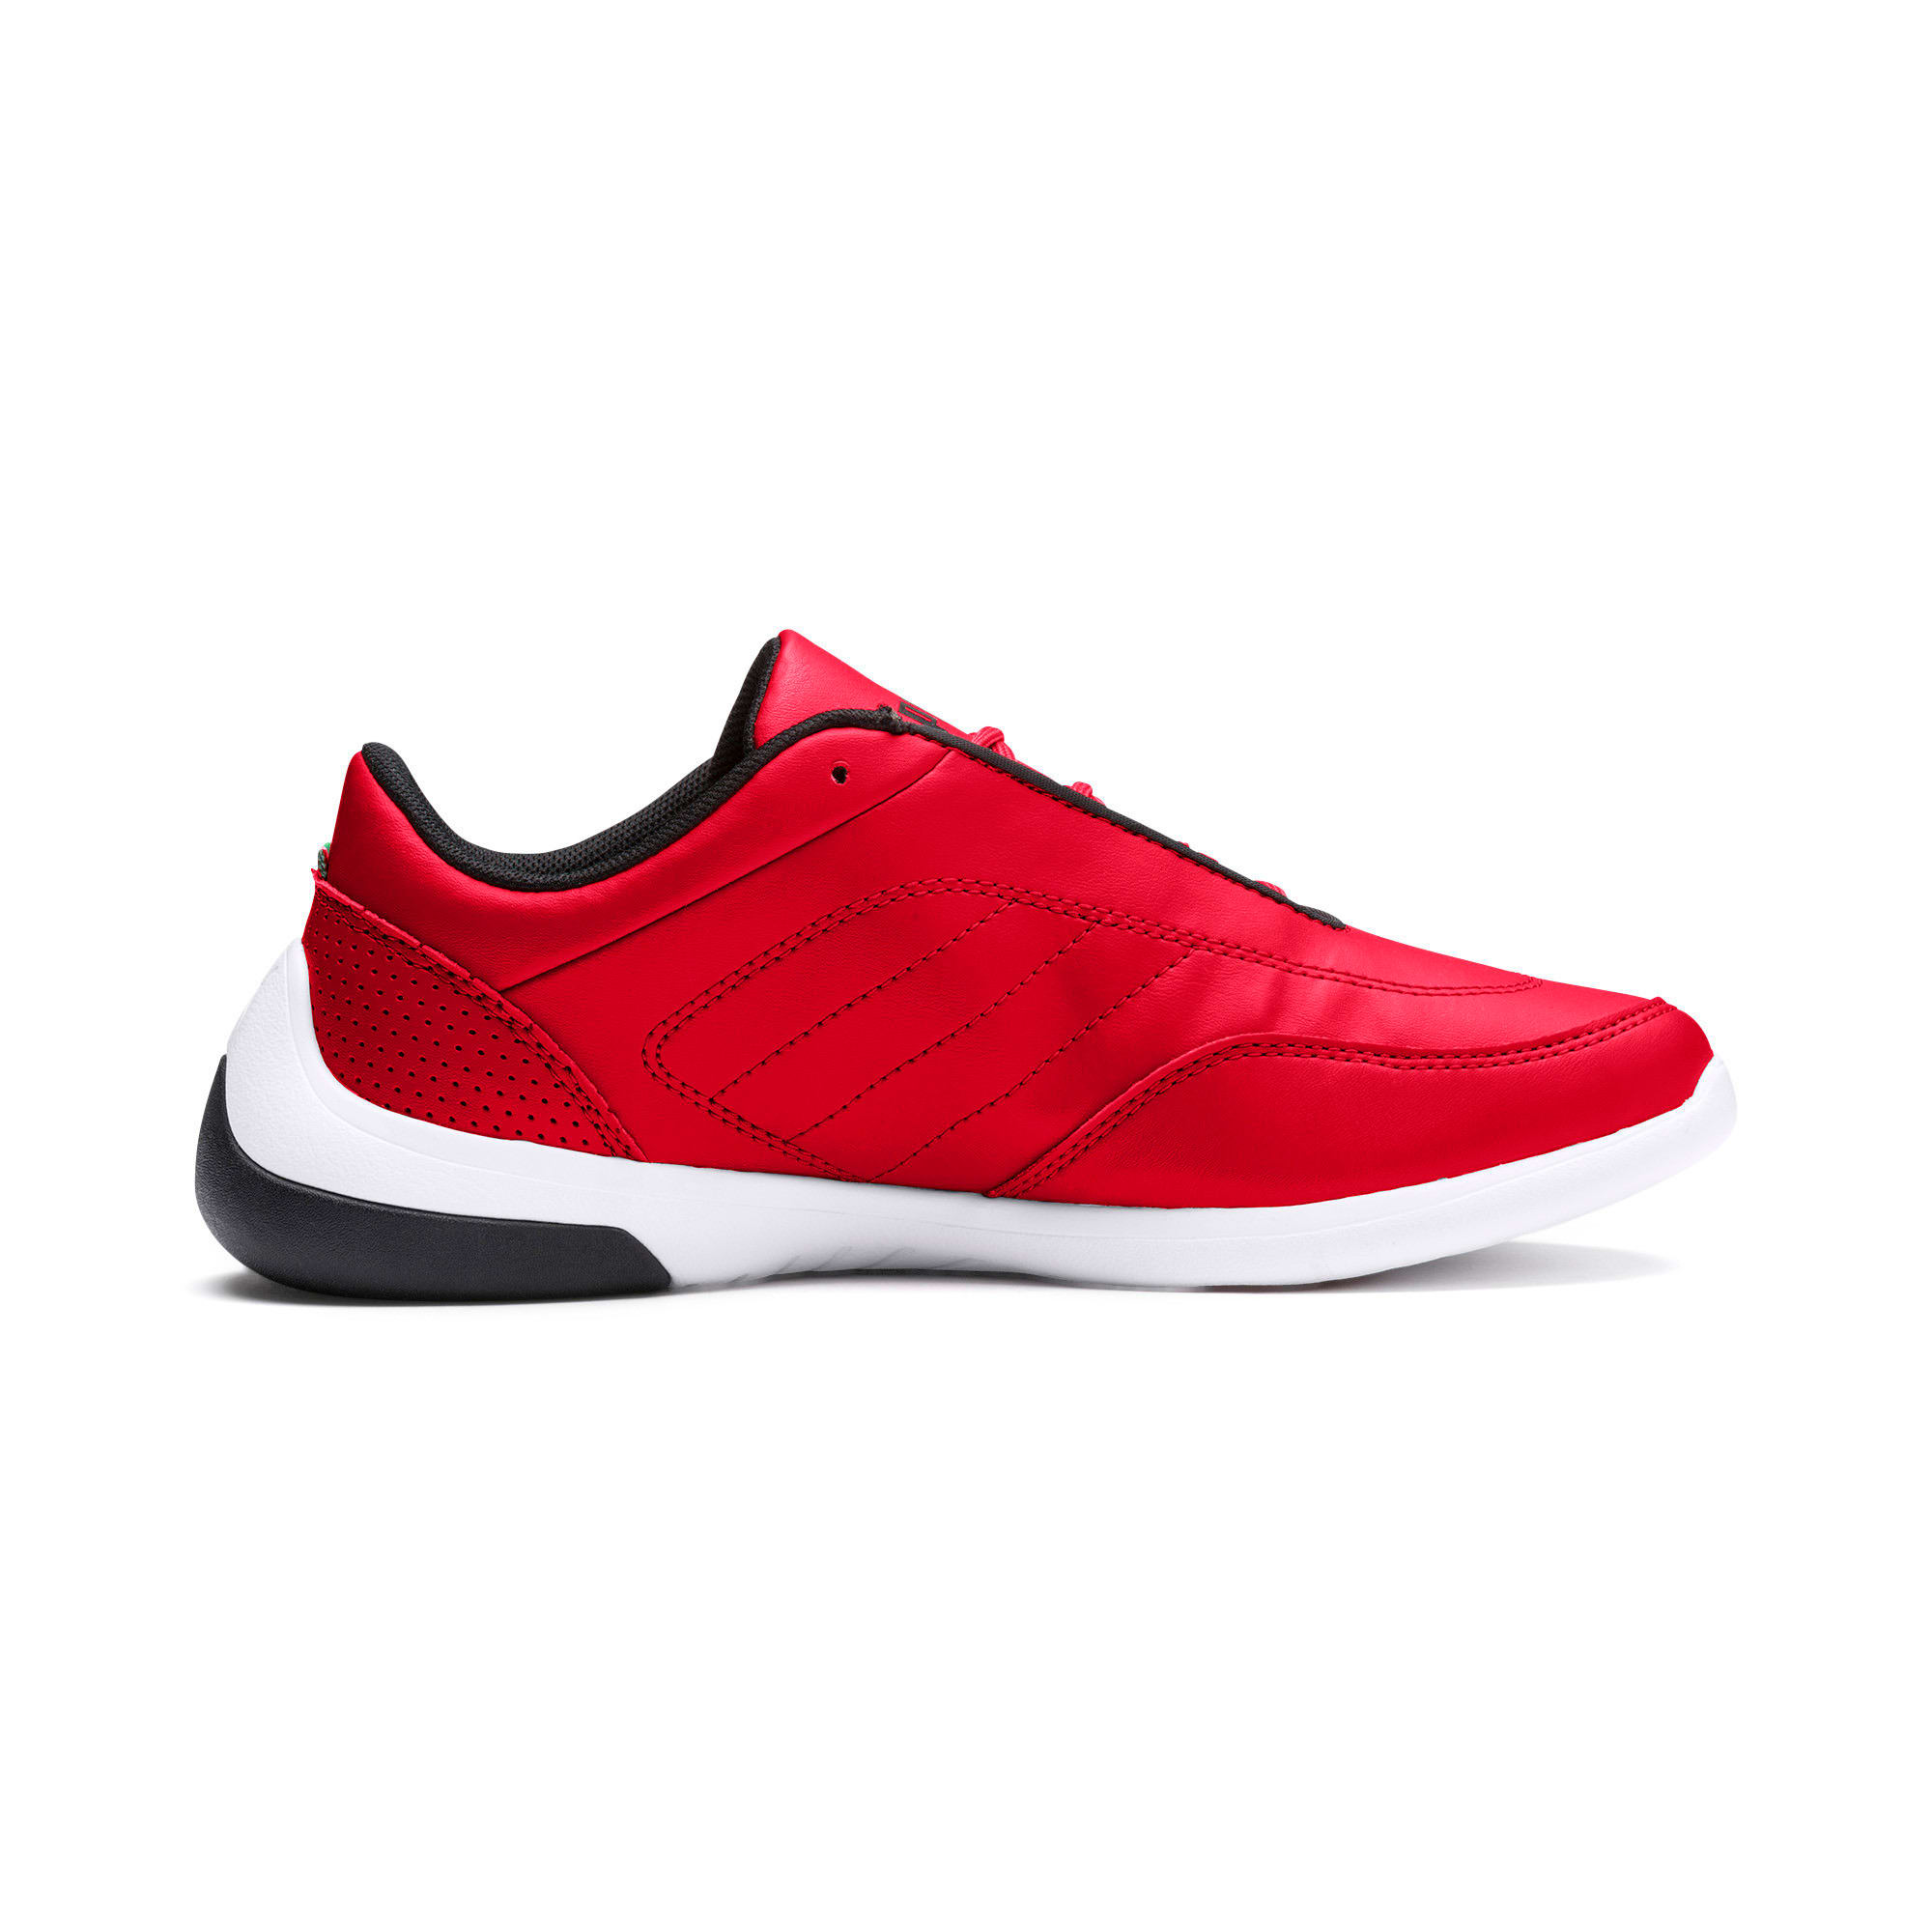 Thumbnail 5 of Ferrari Kart Cat III Youth Trainers, Rosso Corsa-Puma White, medium-SEA